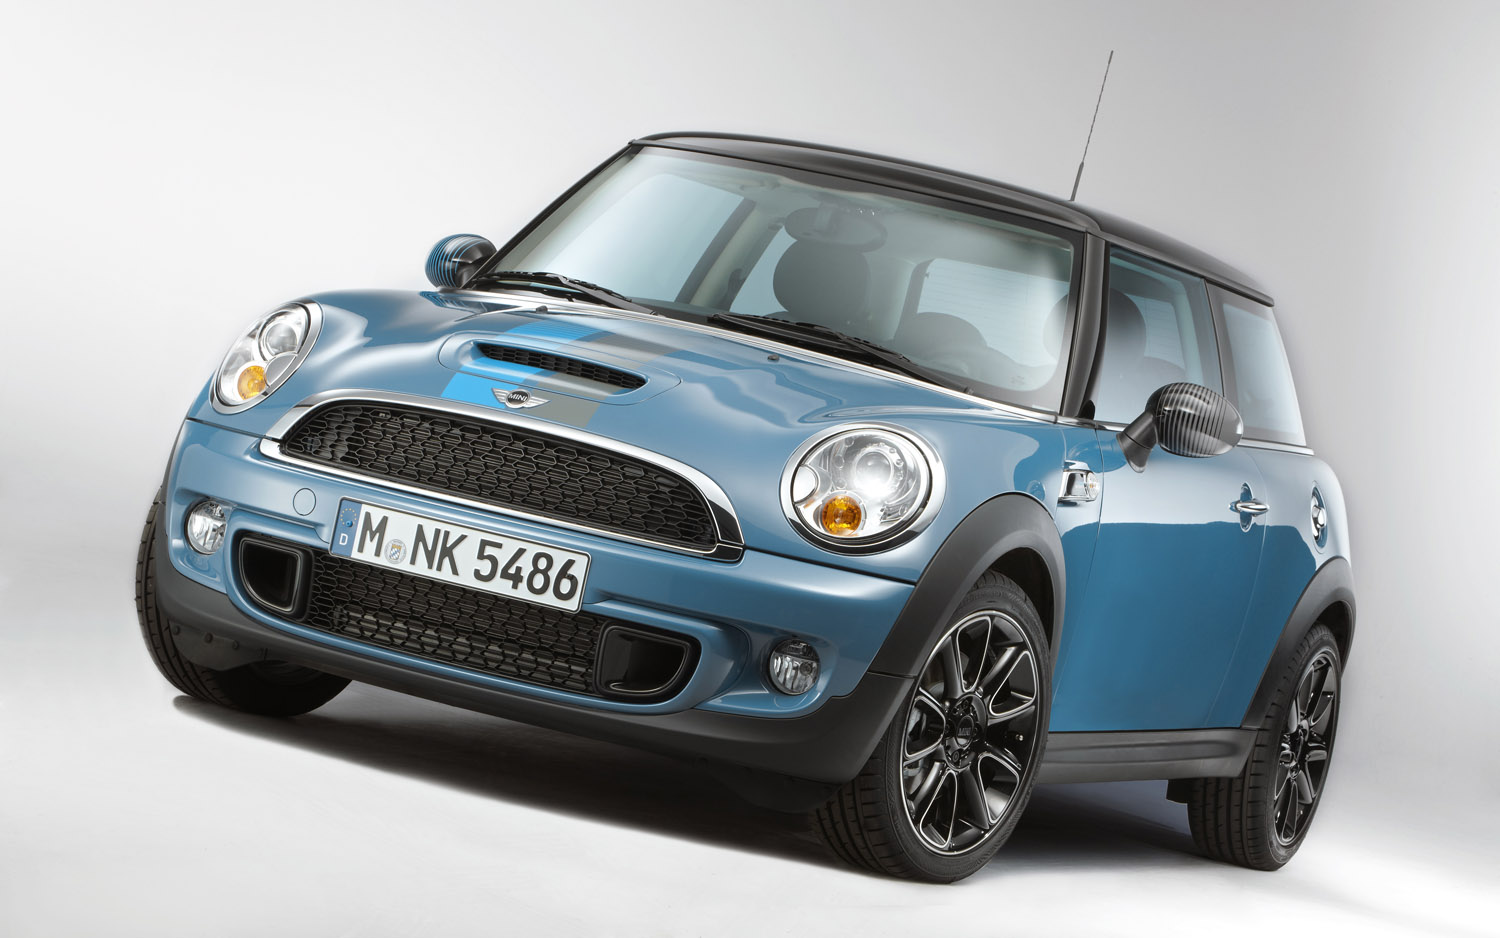 2012-Mini-Cooper-S-Bayswater-front-three-quarter.jpg